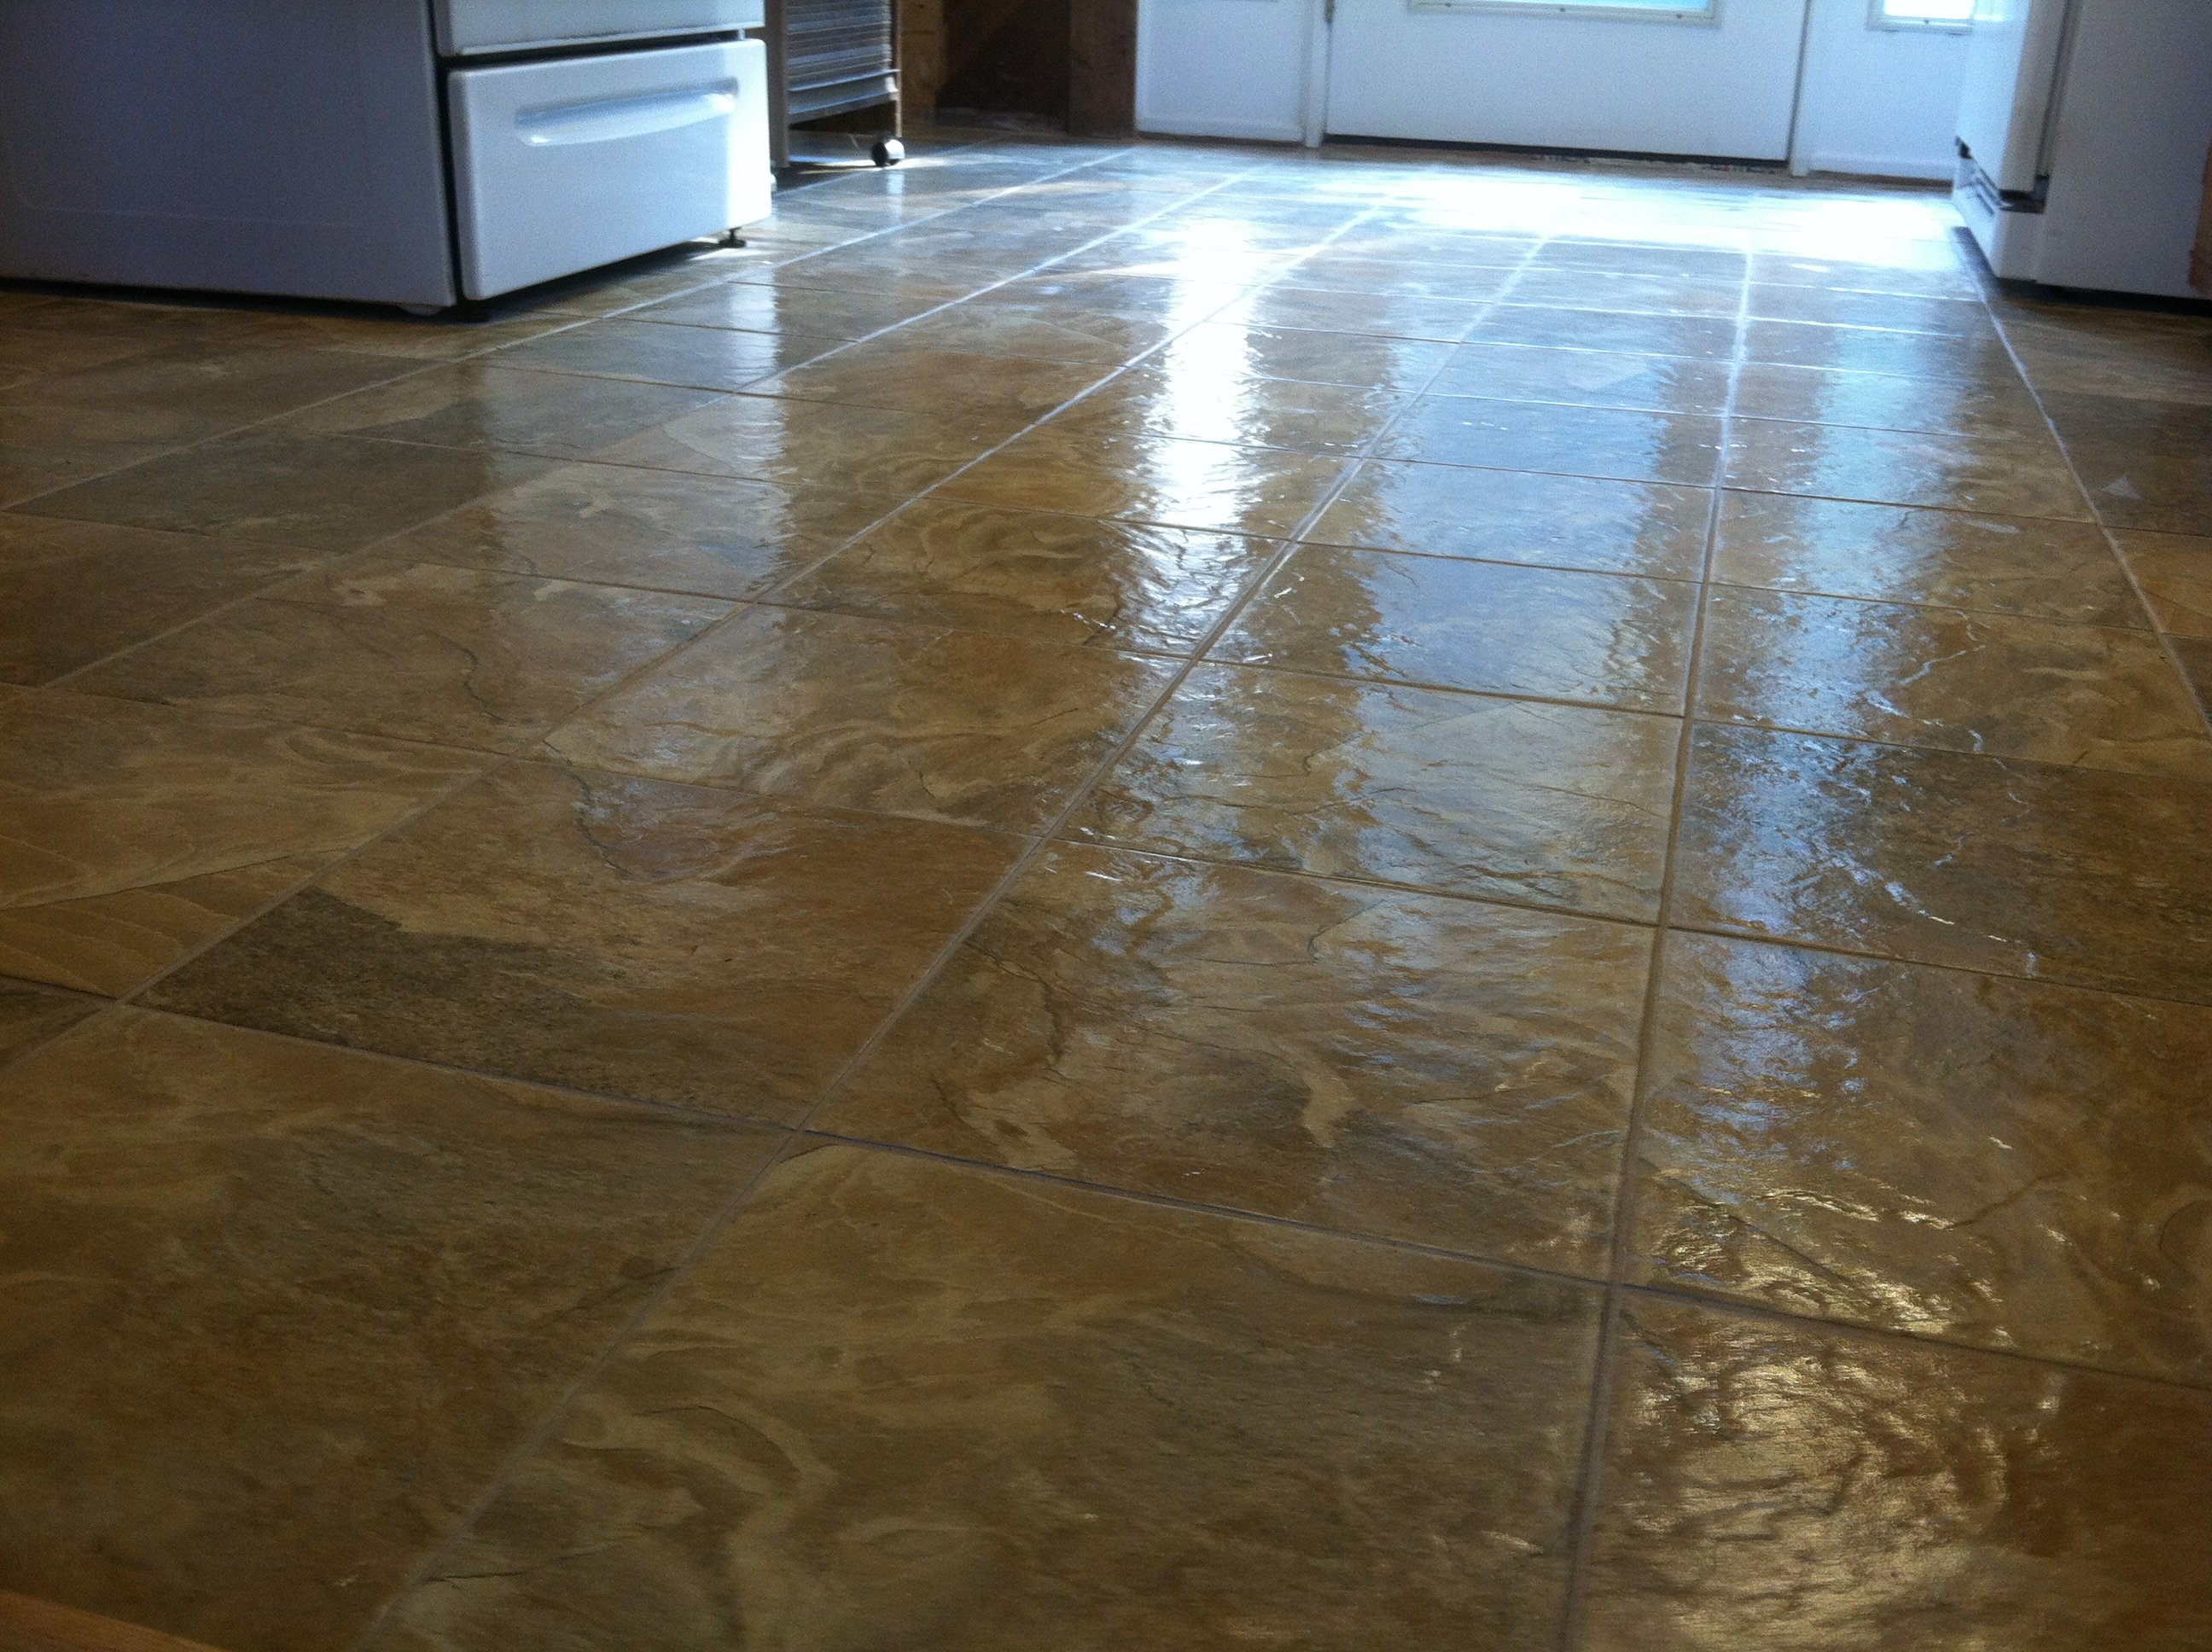 Installing Linoleum Flooring - Is it Worth It? | HomeAdvisor